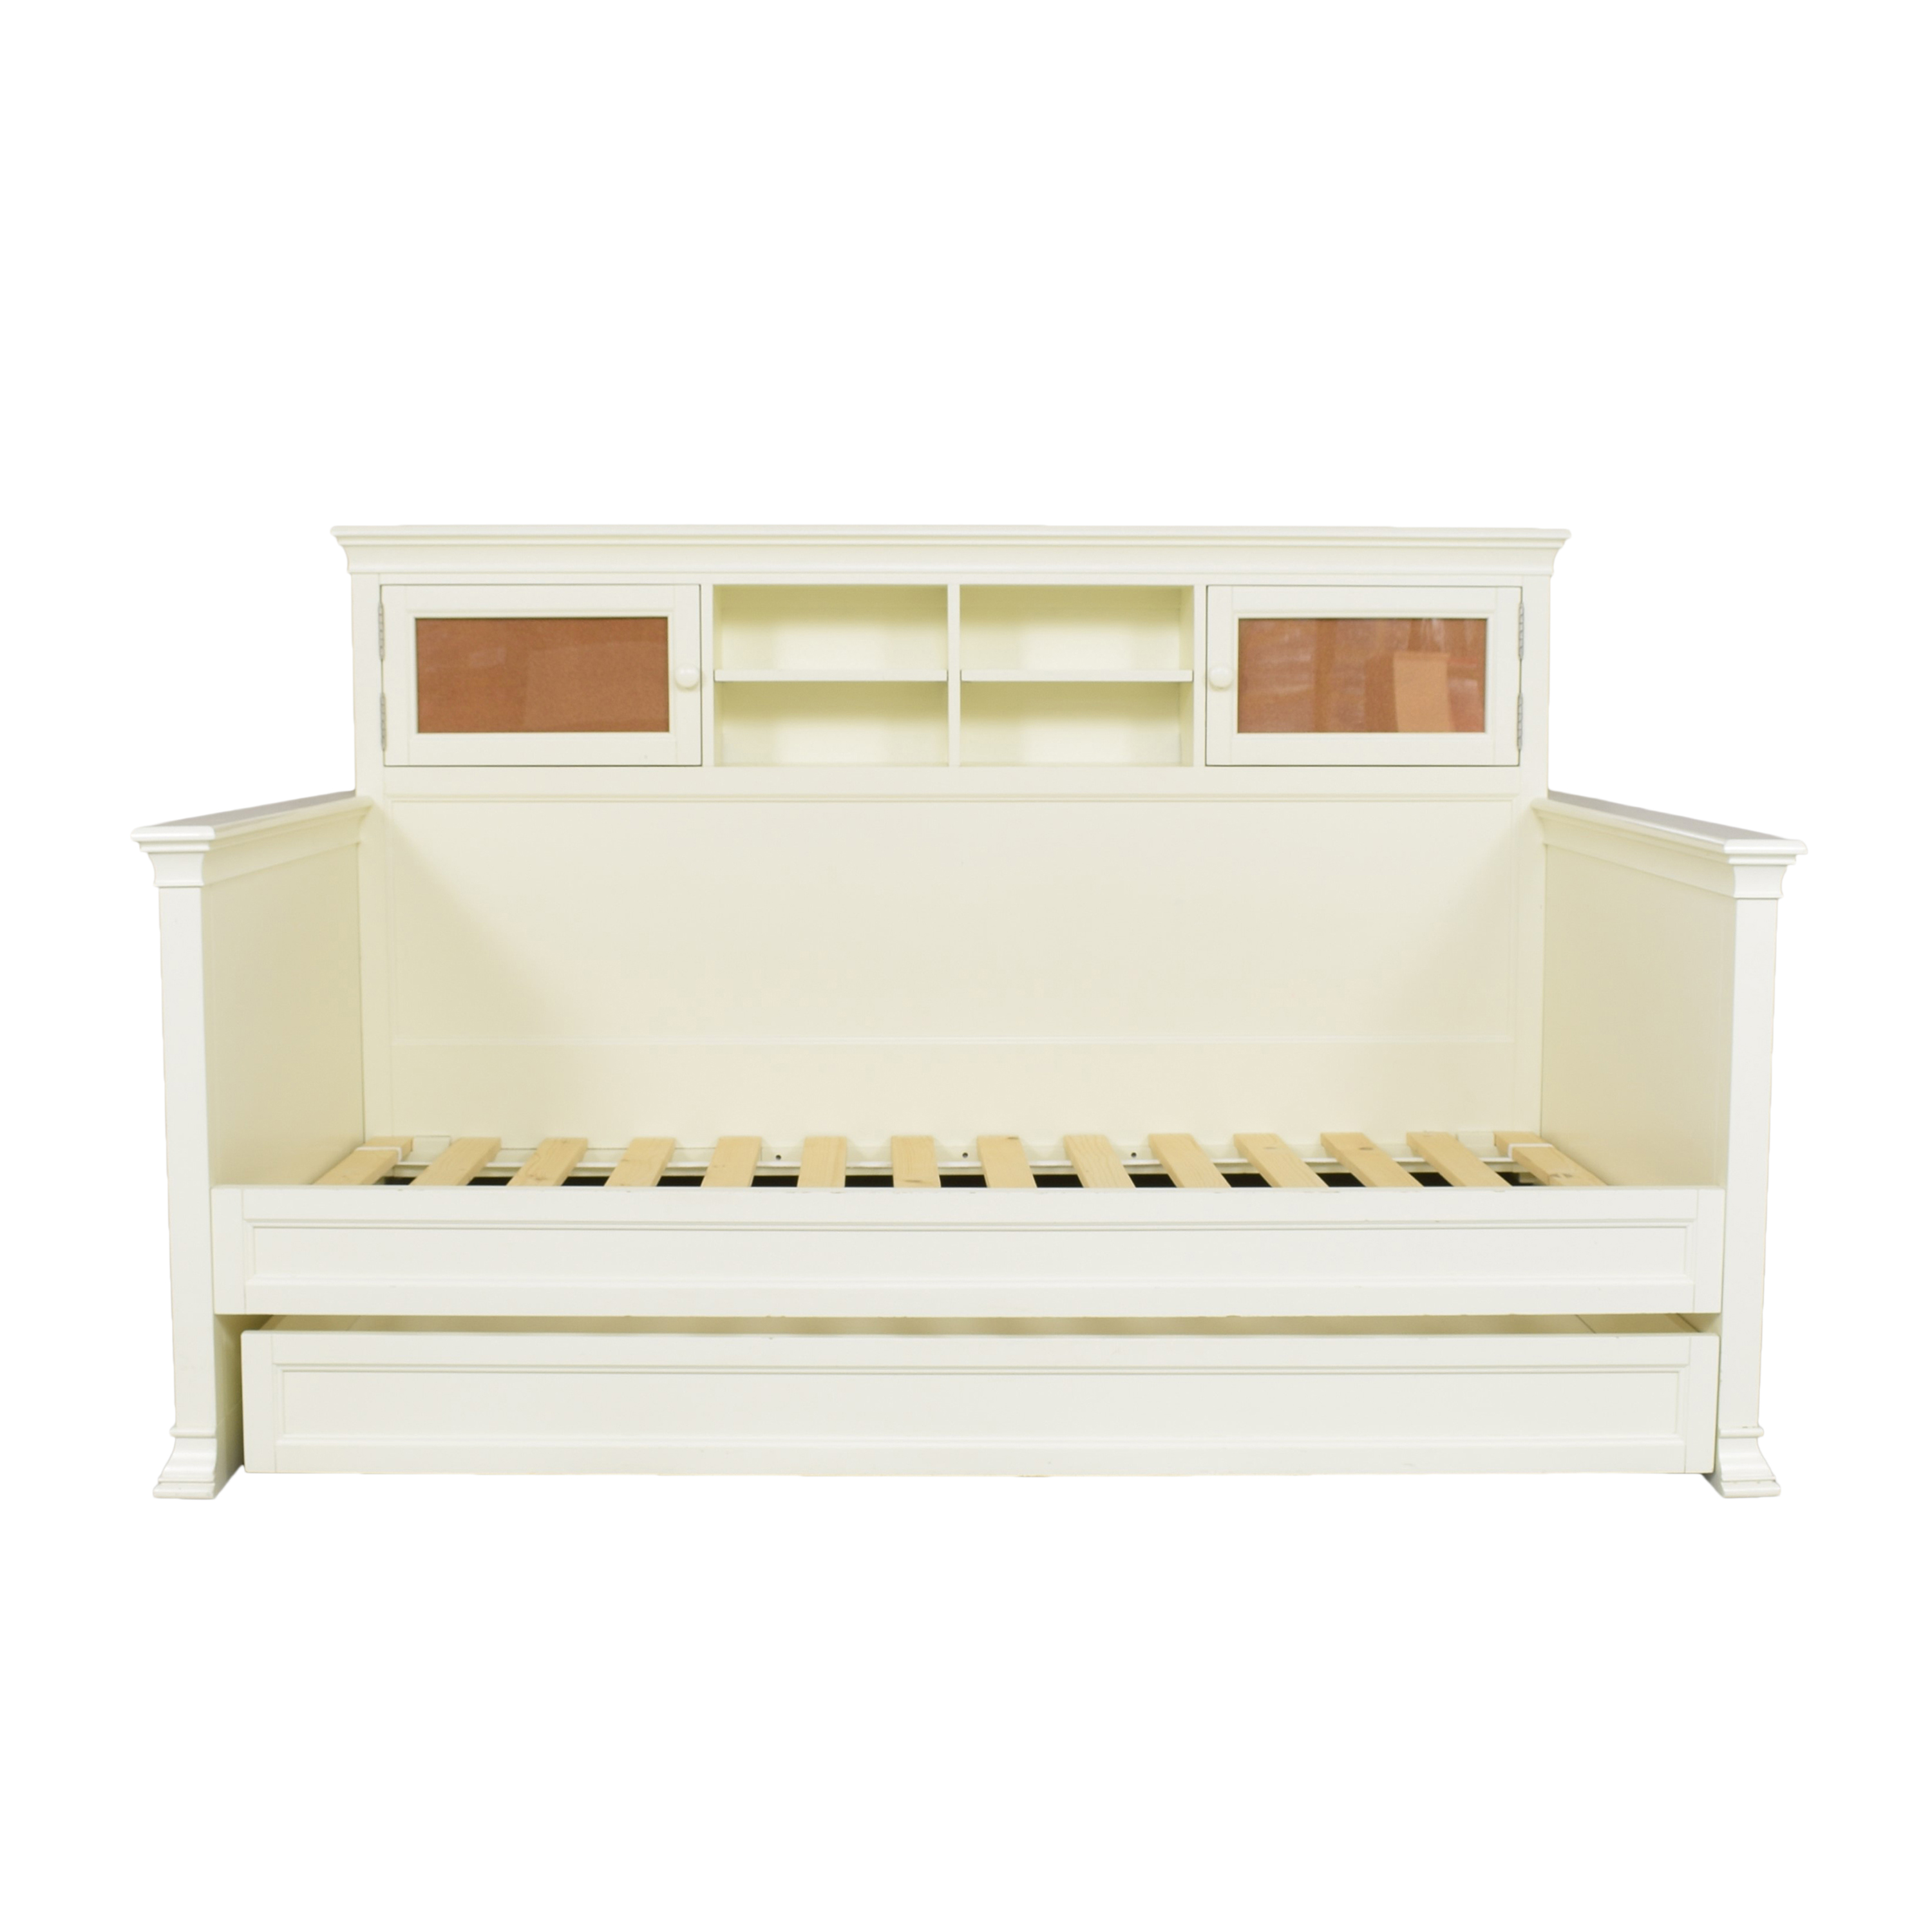 Pottery Barn Teen Pottery Barn Teen Display-It Daybed with Trundle nj